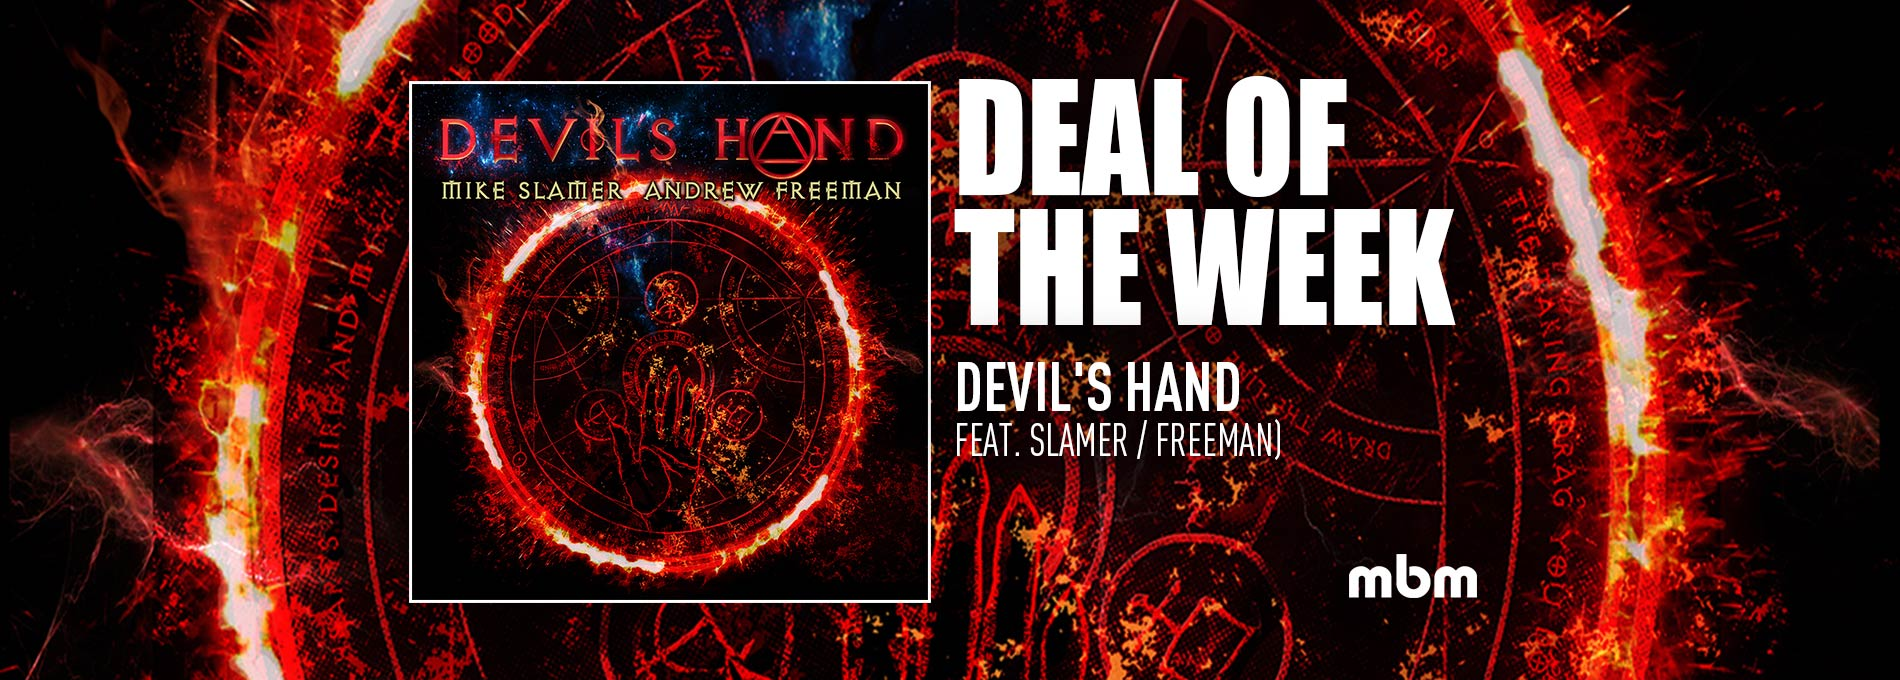 Deal Of The Week: DEVIL'S HAND - Feat. Slamer / Freeman